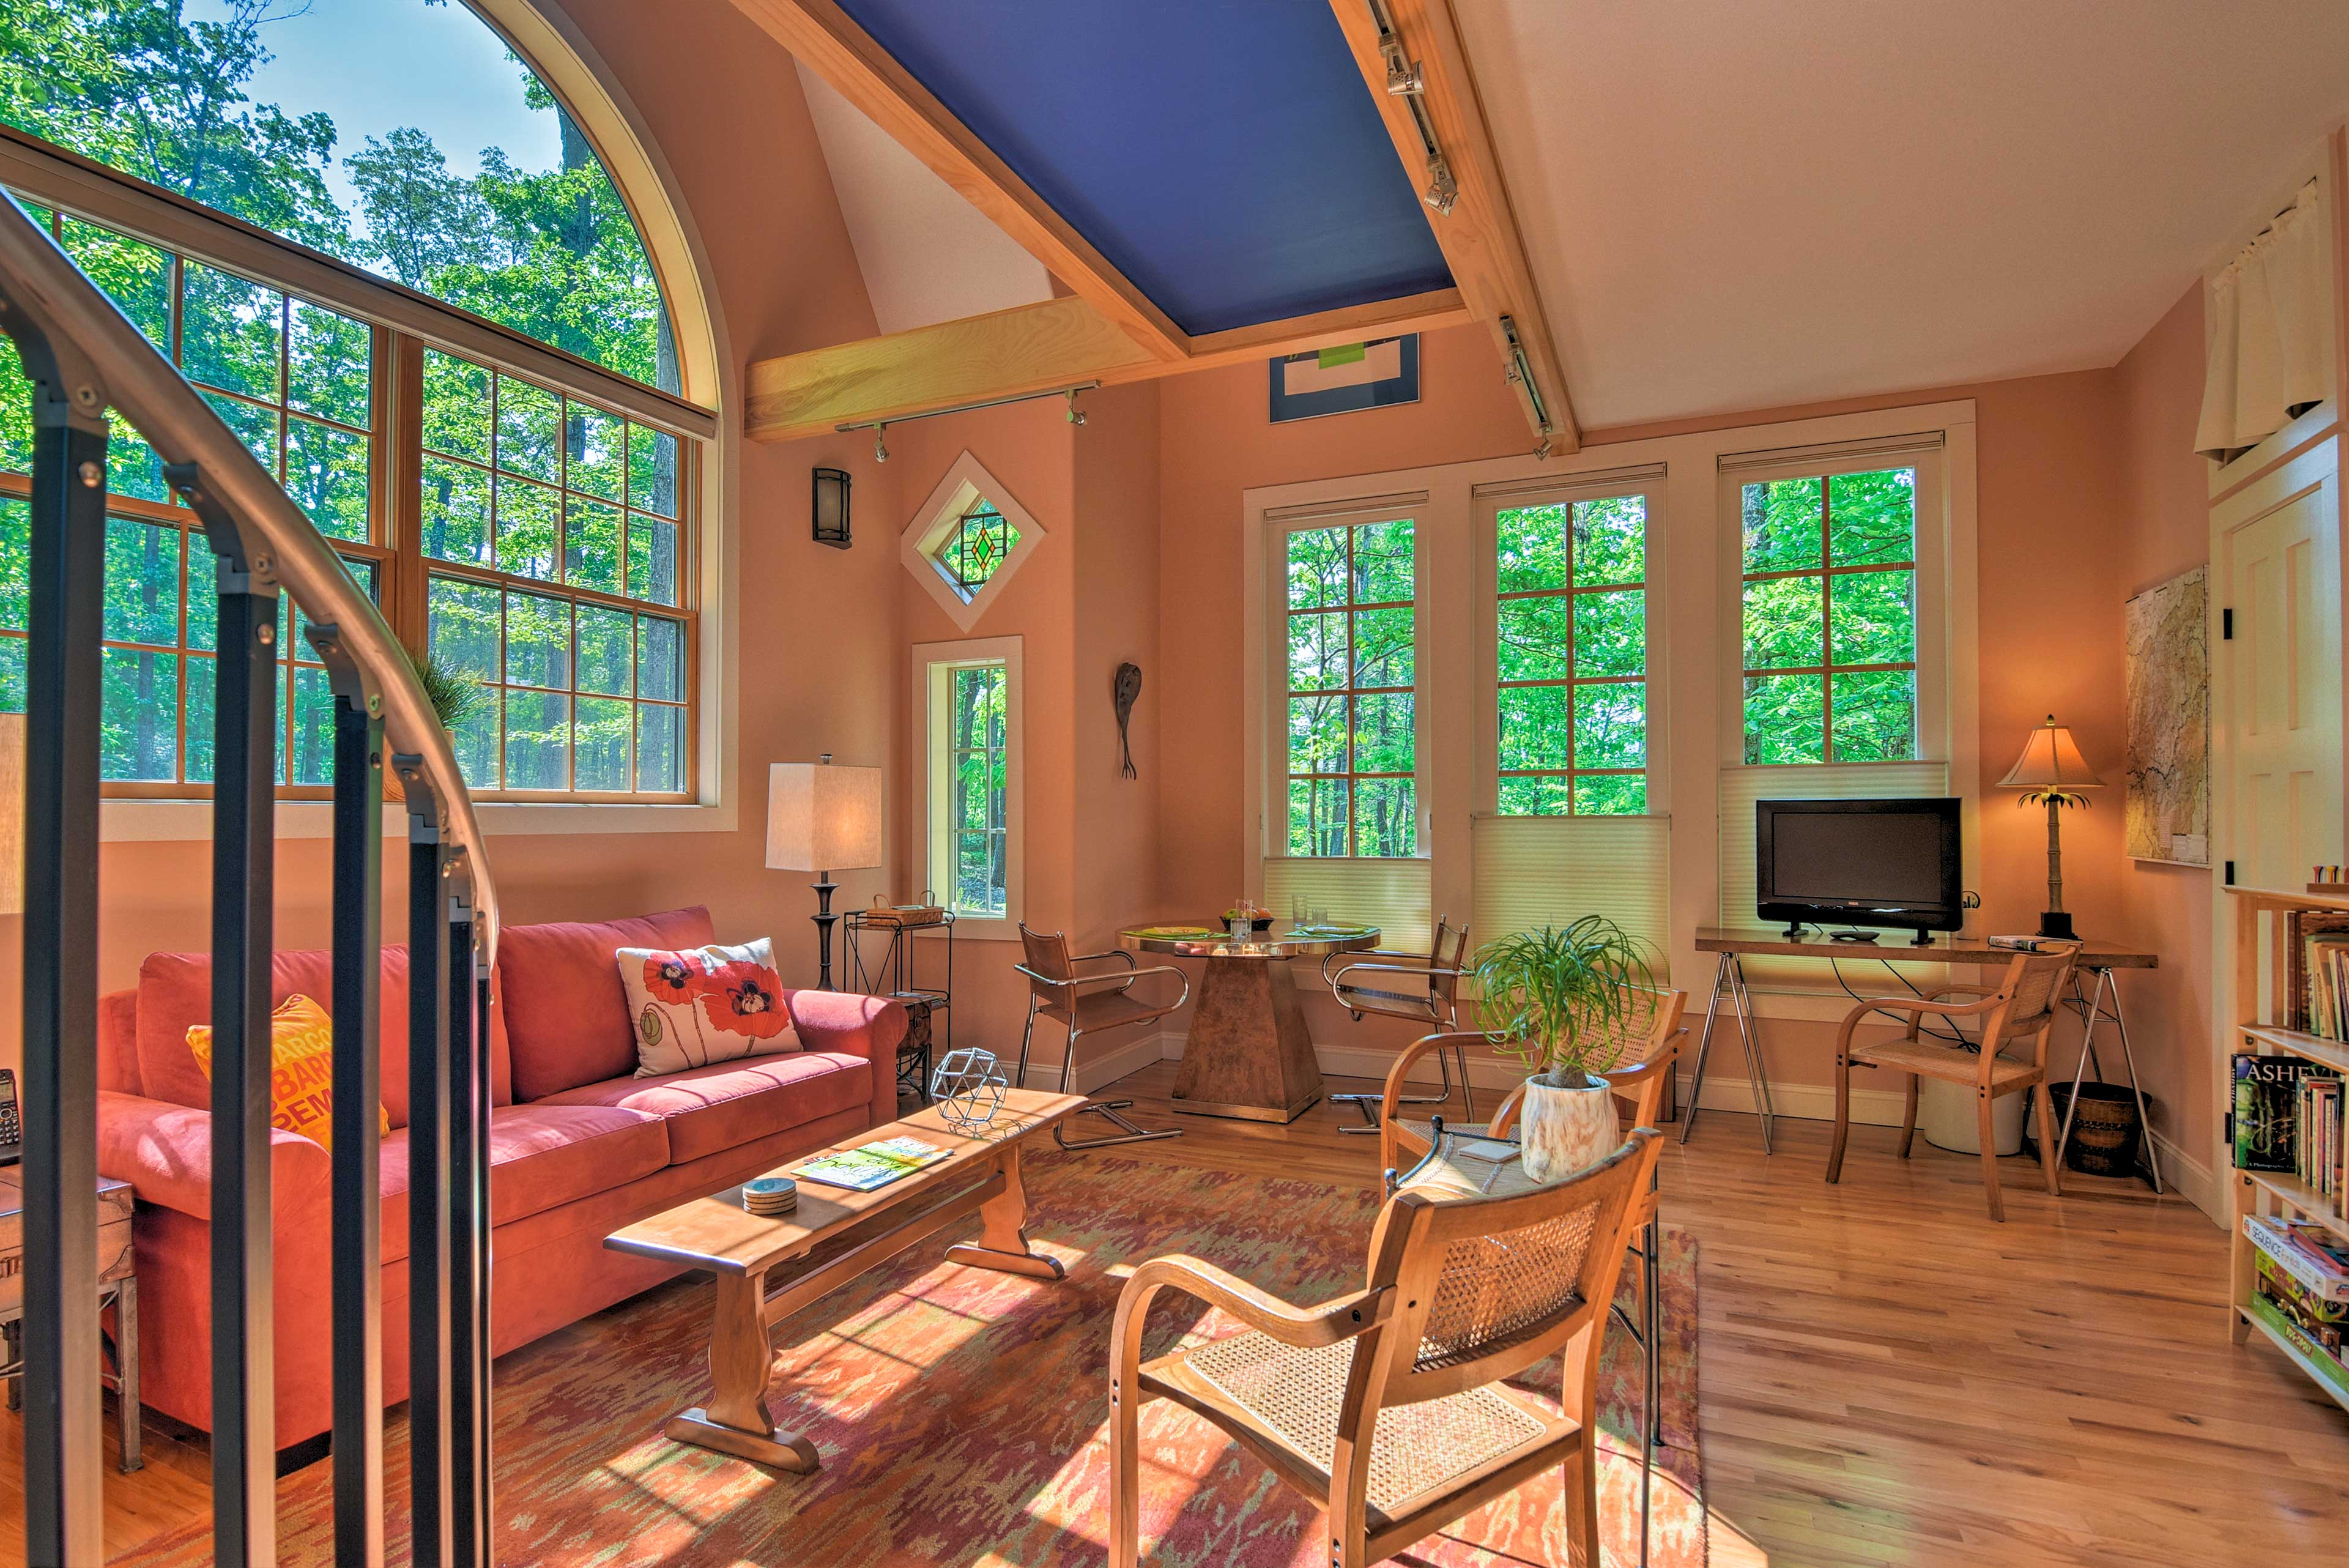 This great room will fill you with natural sunlight each morning.